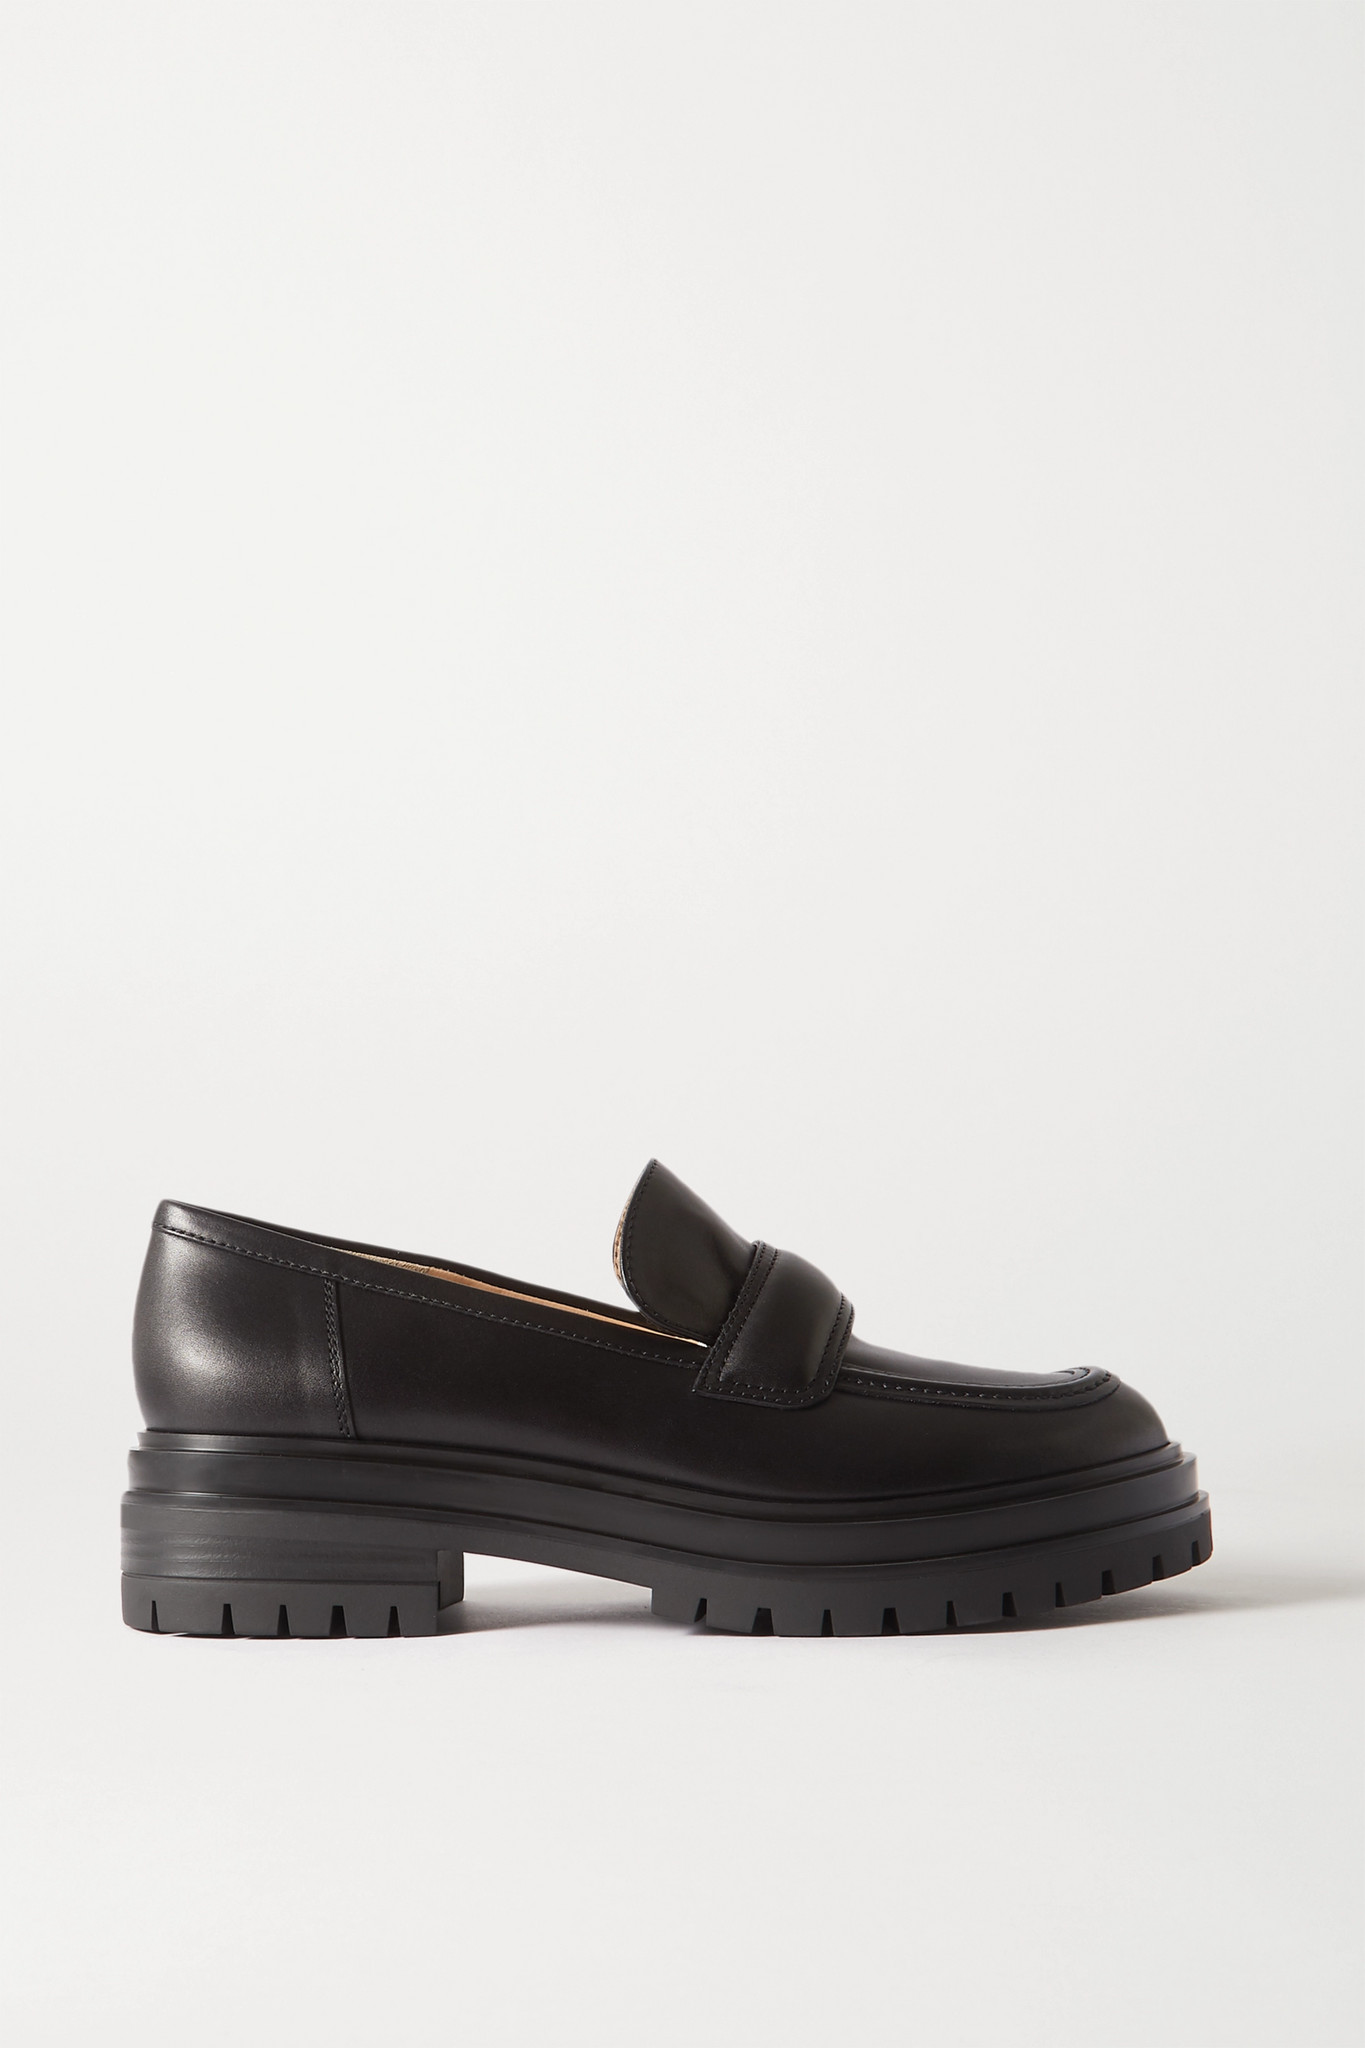 GIANVITO ROSSI - Leather Loafers - Black - IT38.5